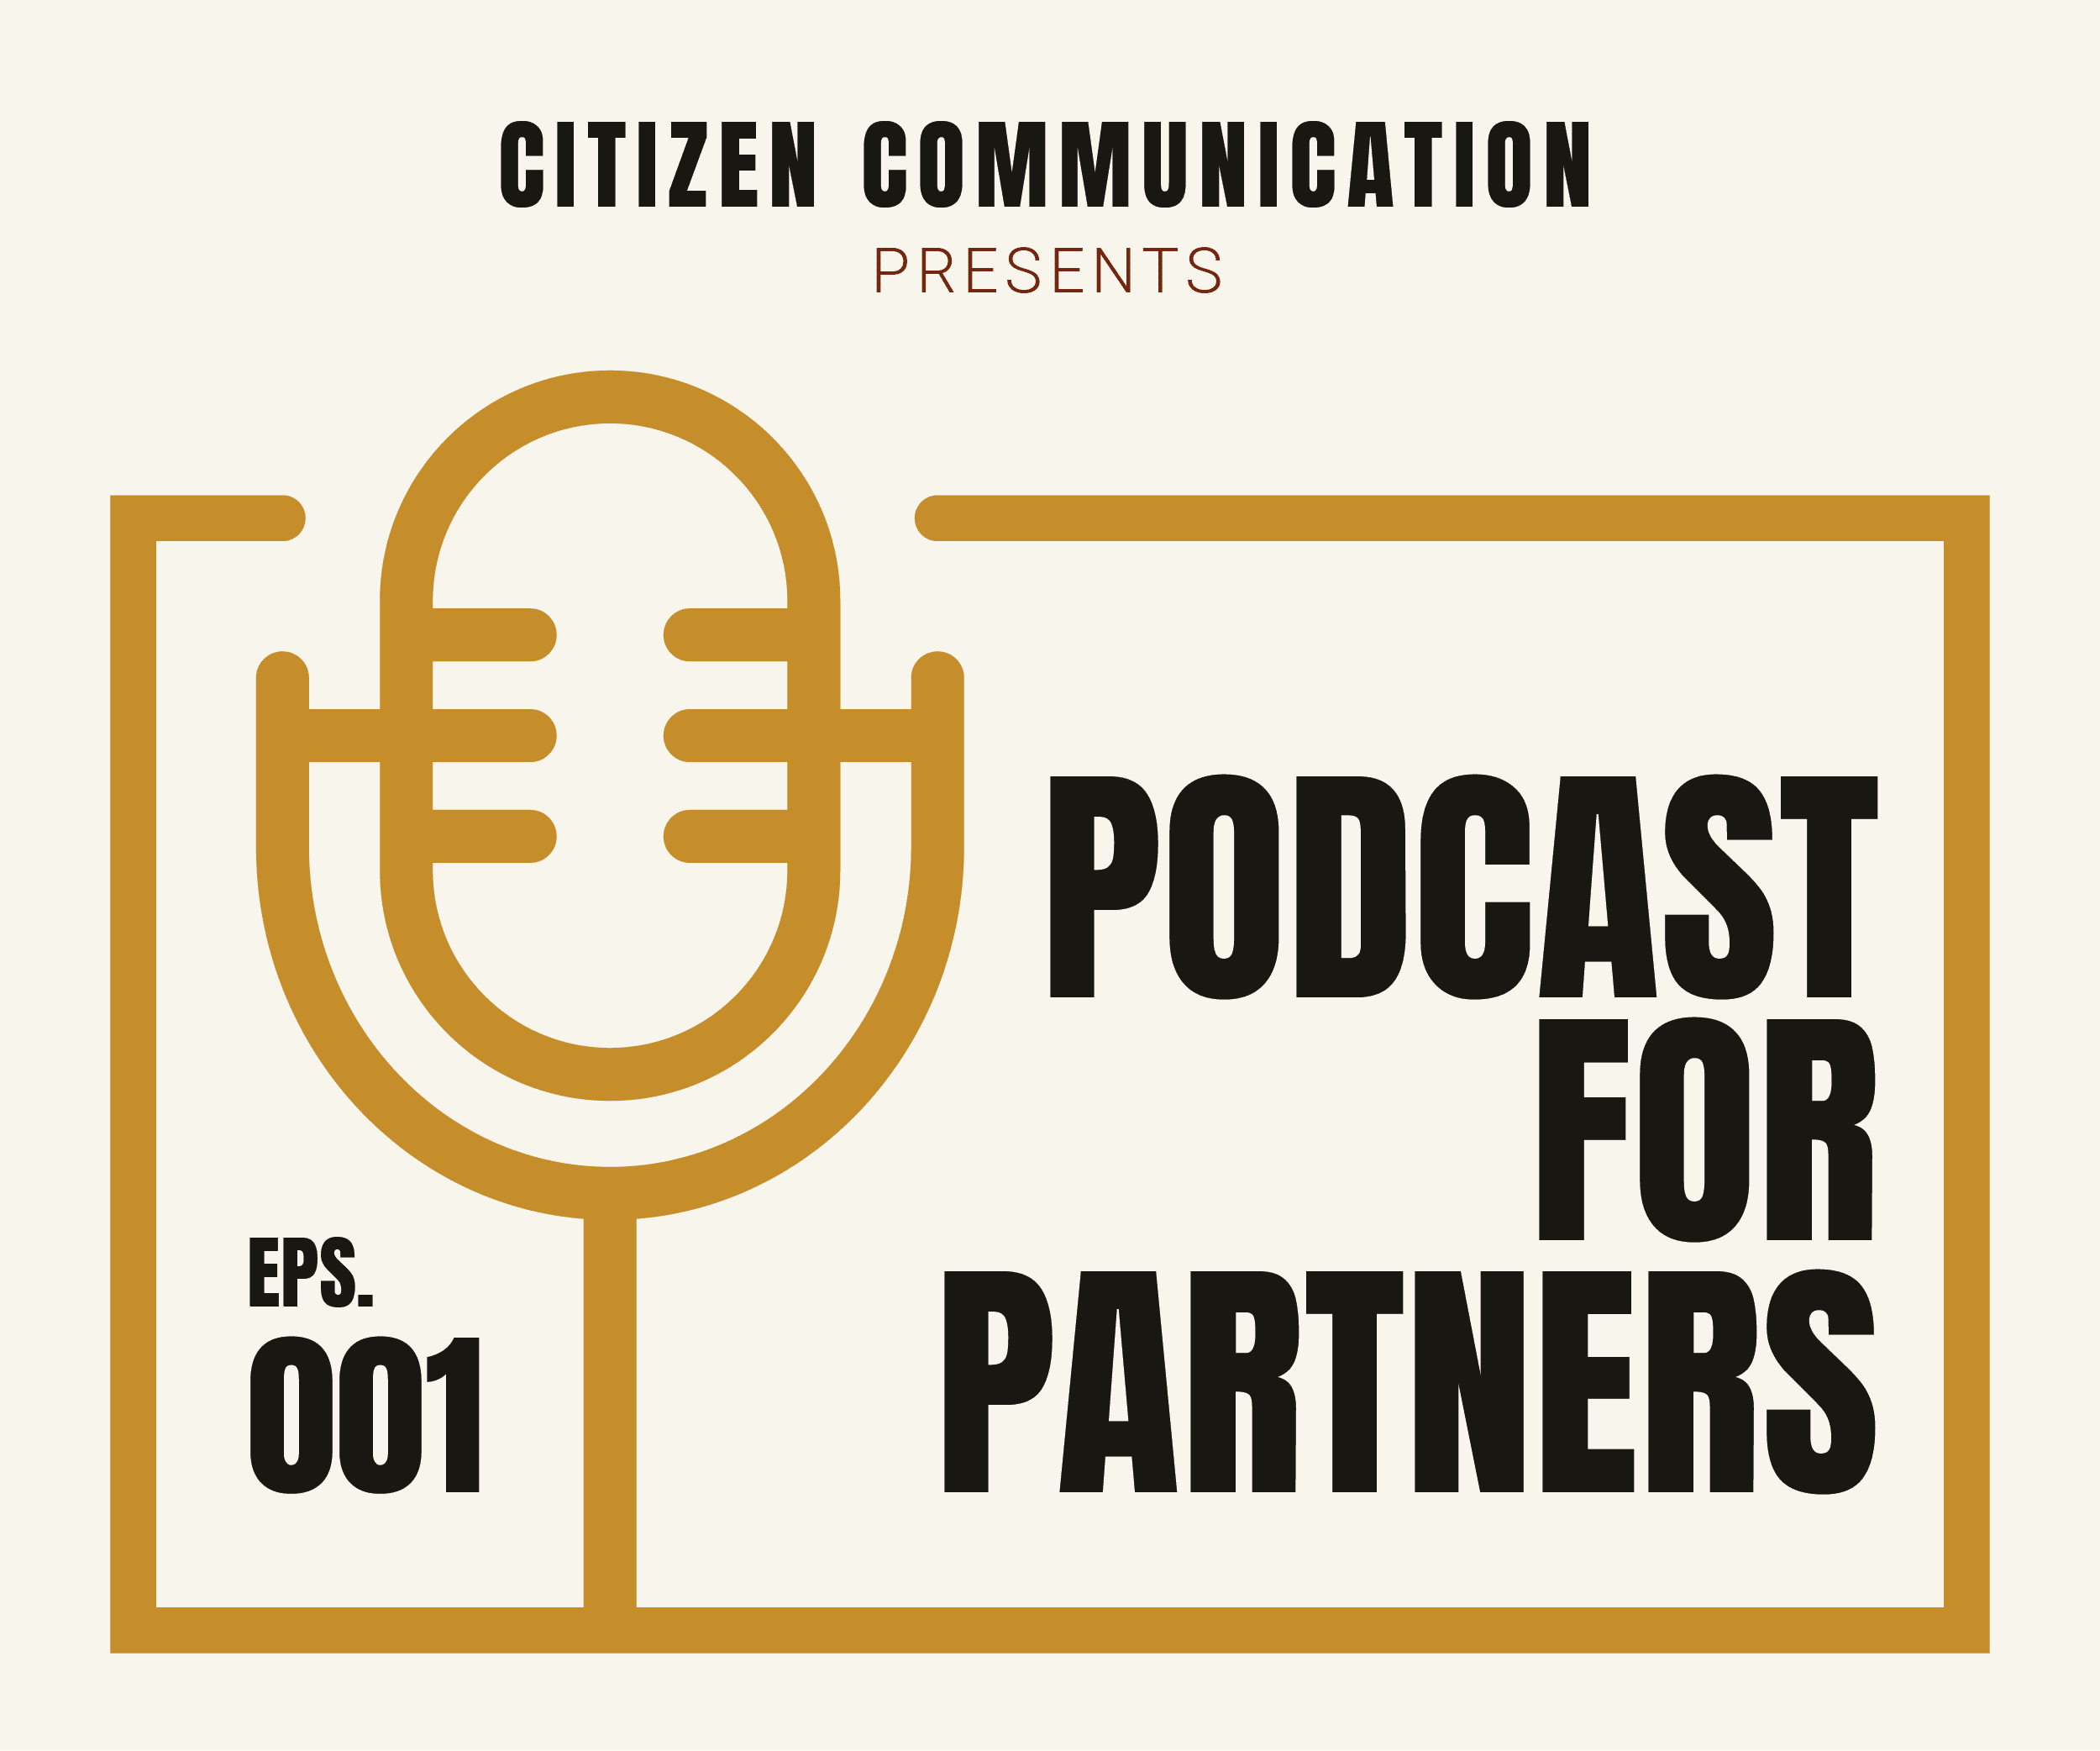 Podcast For Partners Blog 1200 Wide 01